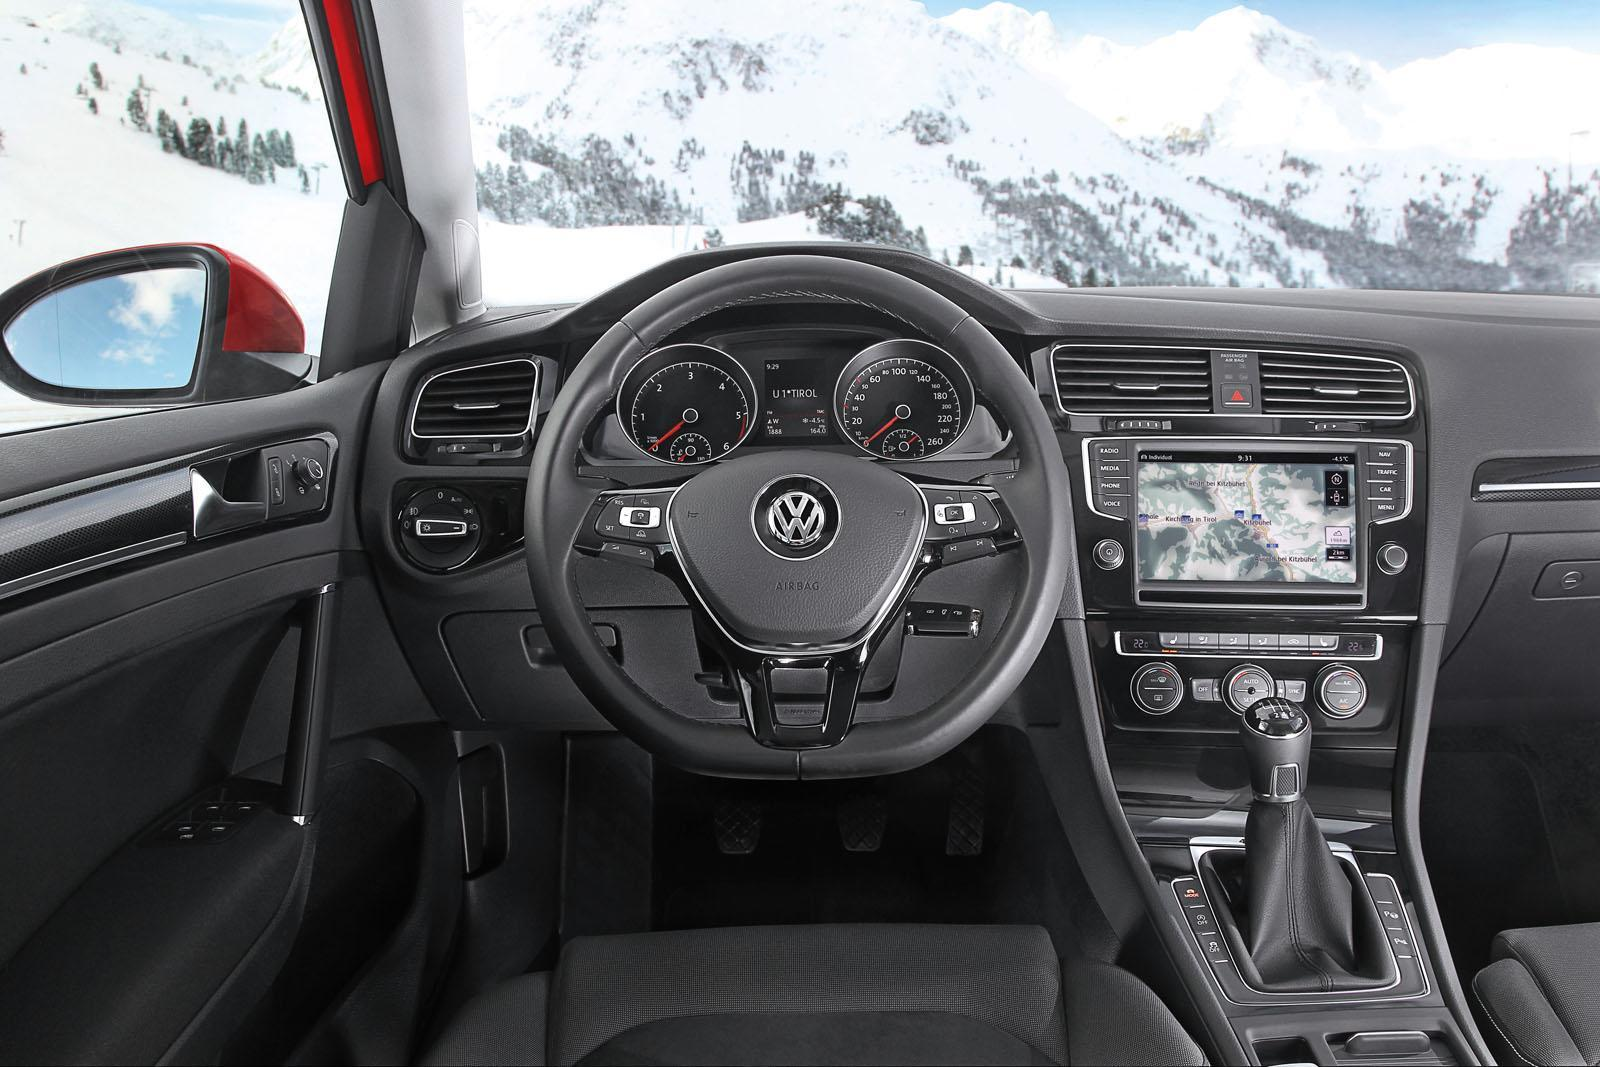 Vw golf 7 4motion 2013 la transmission 4x4 en d tails for Interieur golf 7